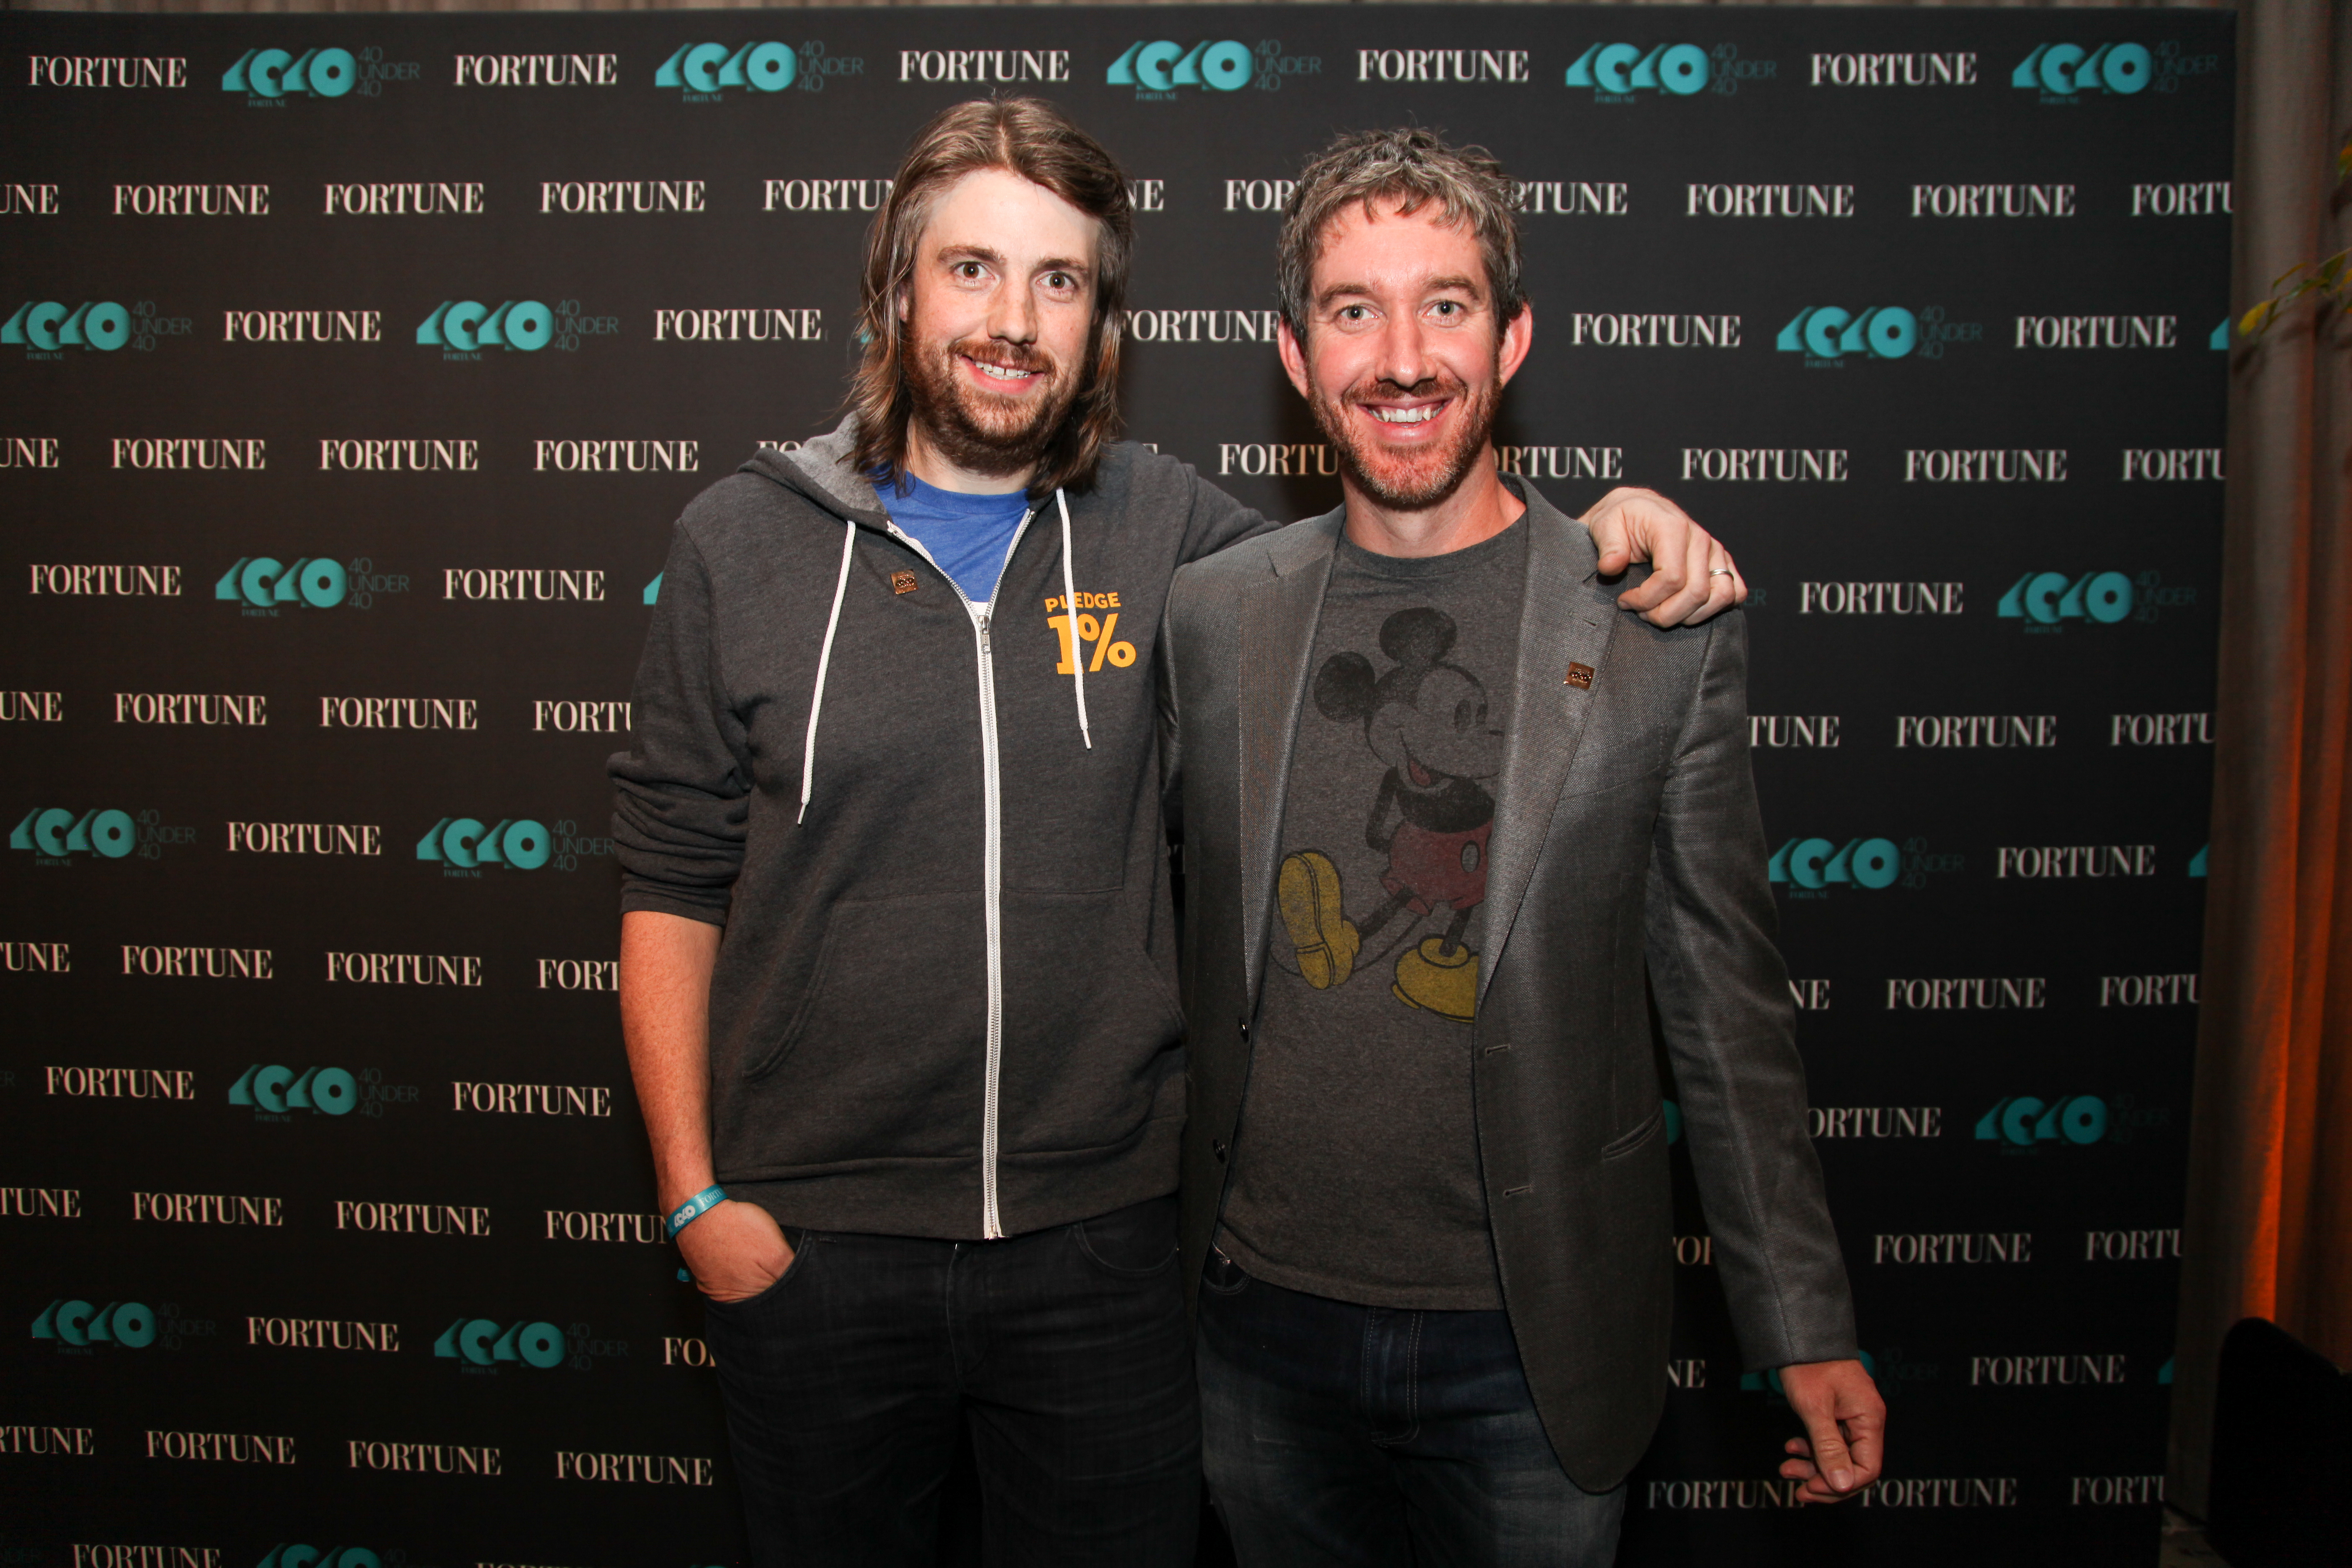 Mike Cannon-Brookes, left, and Scott Farquhar, co-founders and co-CEOs of Atlassian and 2016 honorees on Fortune's 40 Under 40 list, pose for a photo.